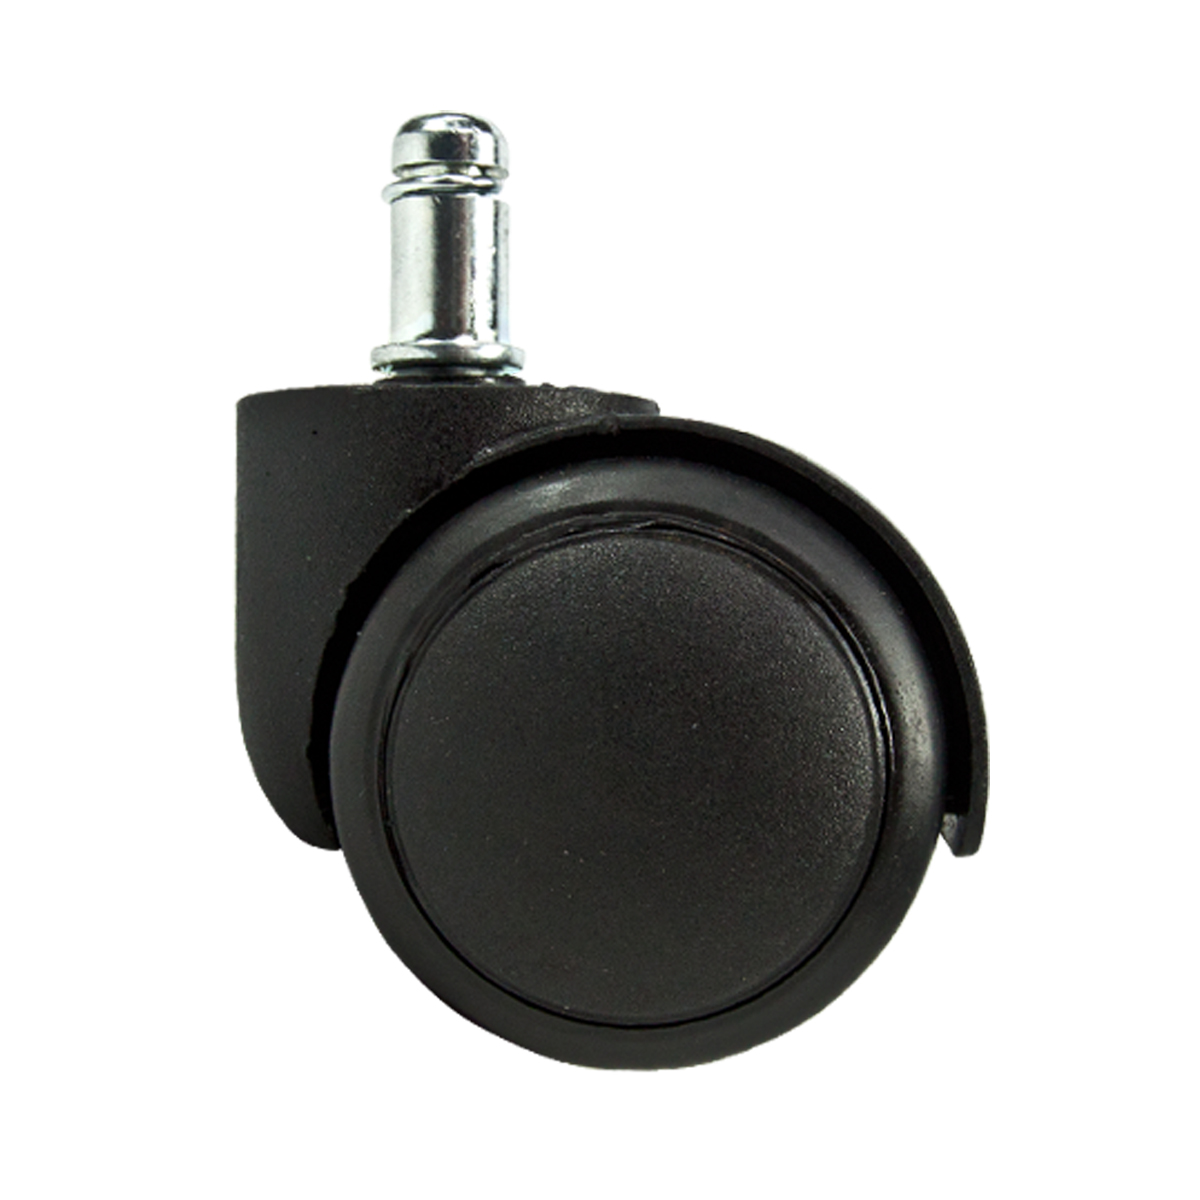 replacement casters for office chairs lazyboy chair 5 black caster soft wheel swivel rubber home